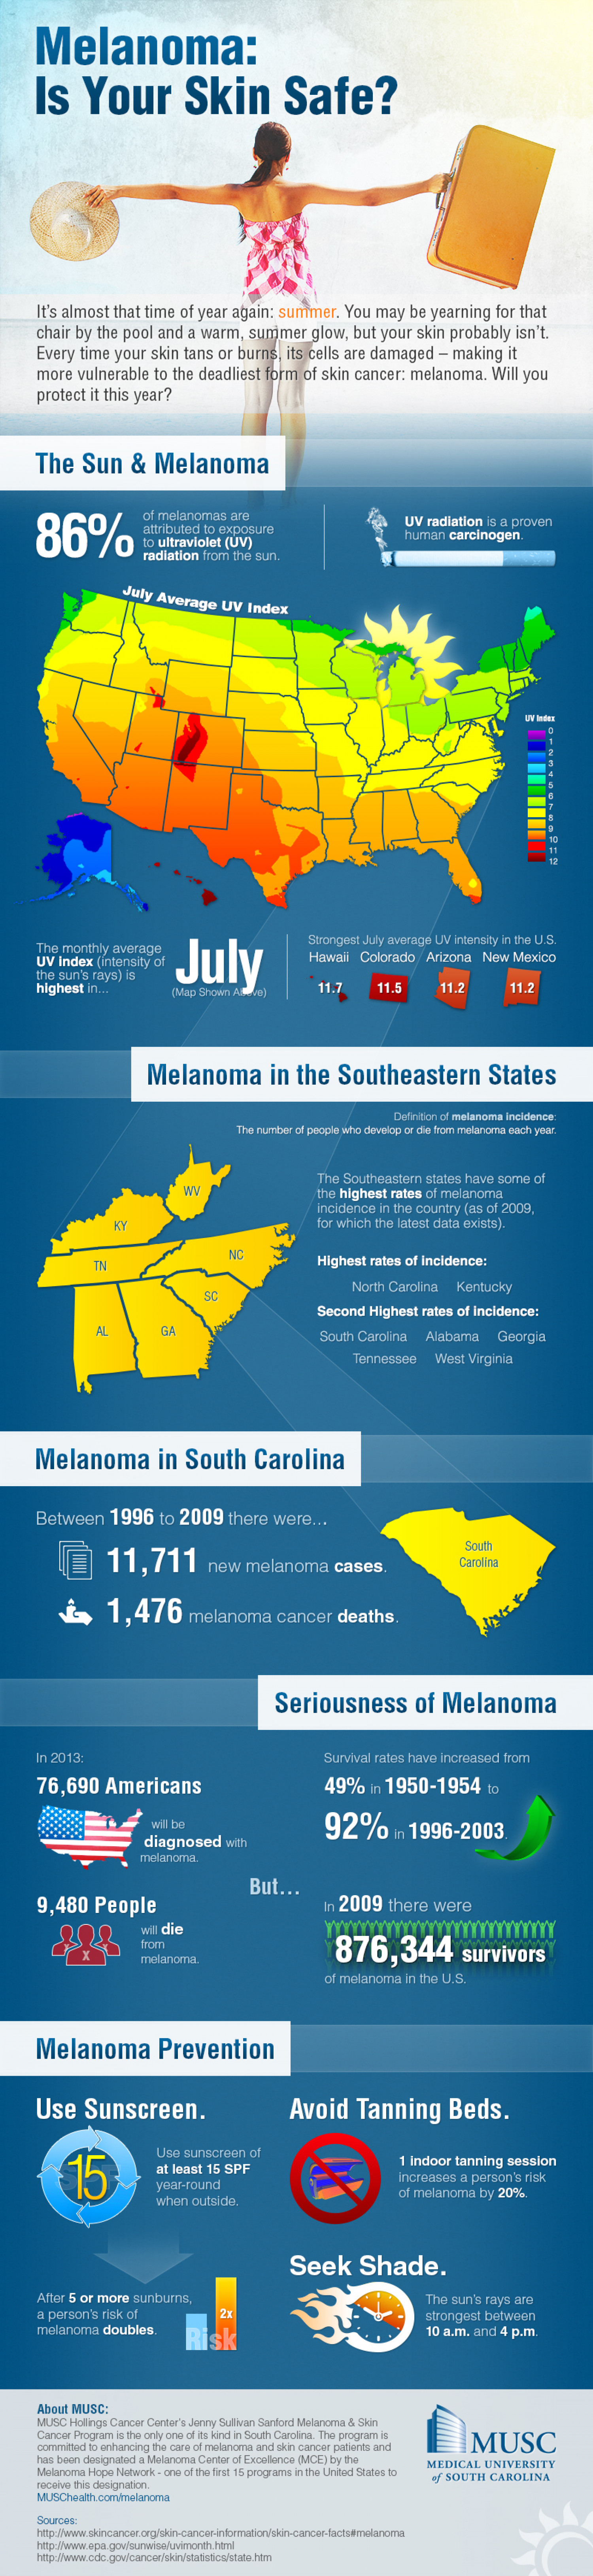 Melanoma: Is Your Skin Safe? Infographic